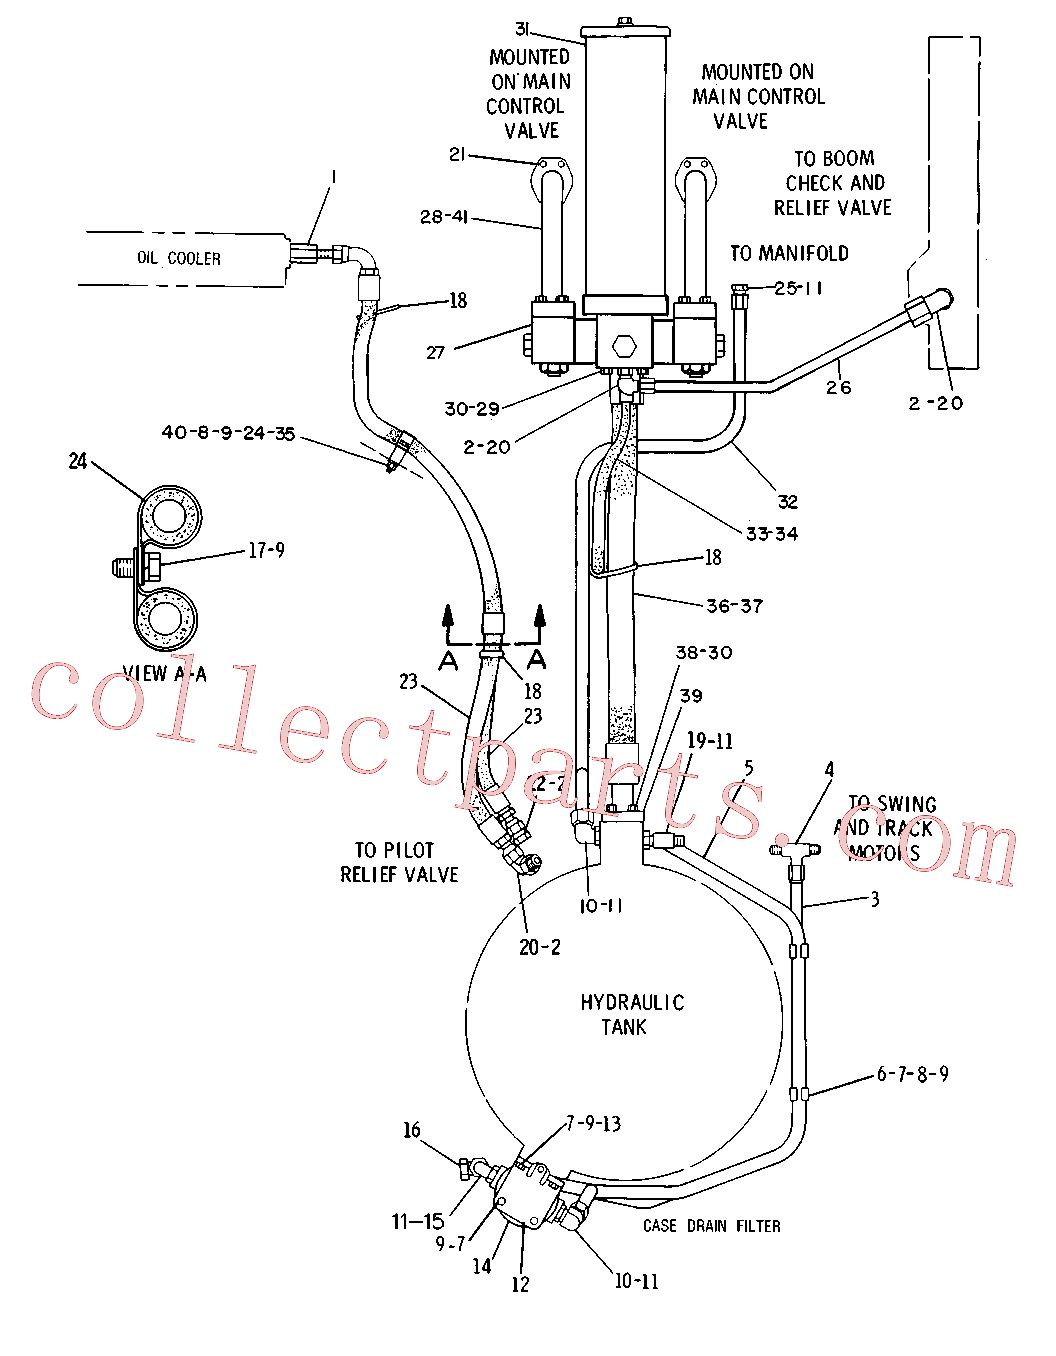 CAT 4J-6064 for 966C Wheel Loader(WTL) hydraulic system 5C-0383 Assembly